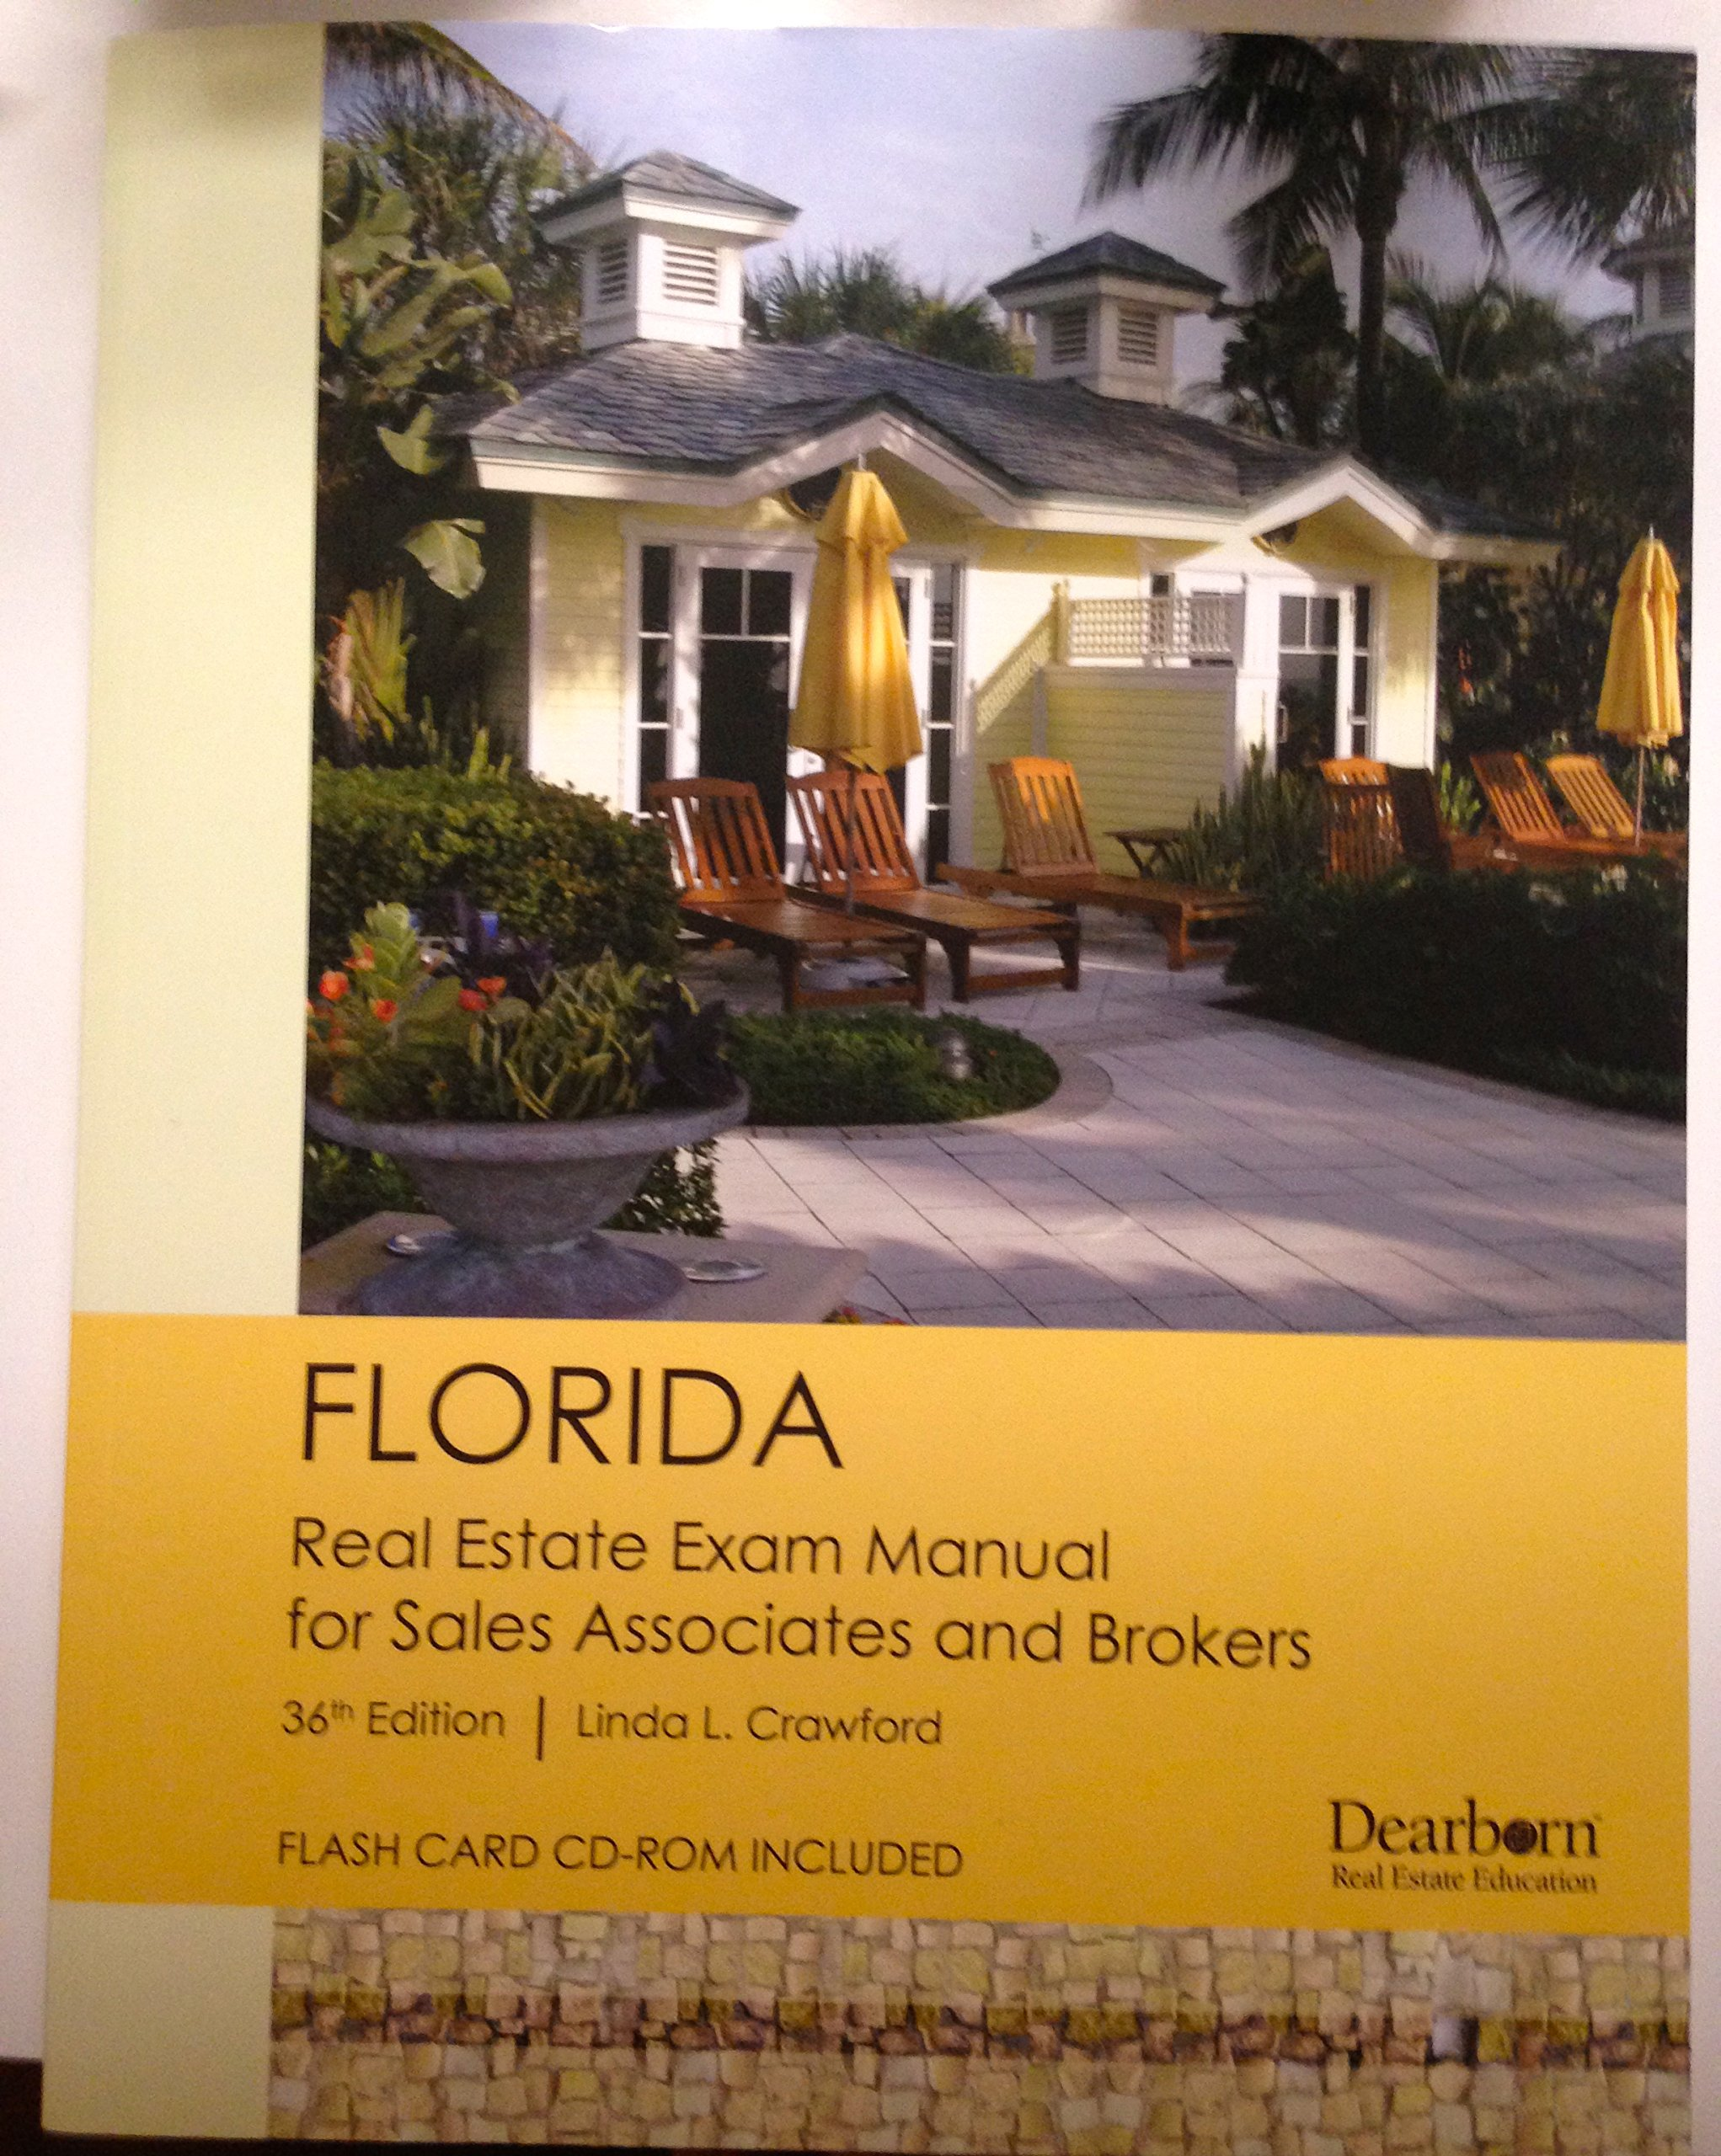 Florida Real Estate Exam Manual for Sales Associates and Brokers 36th  Edition By Linda L. Crawford: Linda Crawford: 9781427743725: Amazon.com:  Books